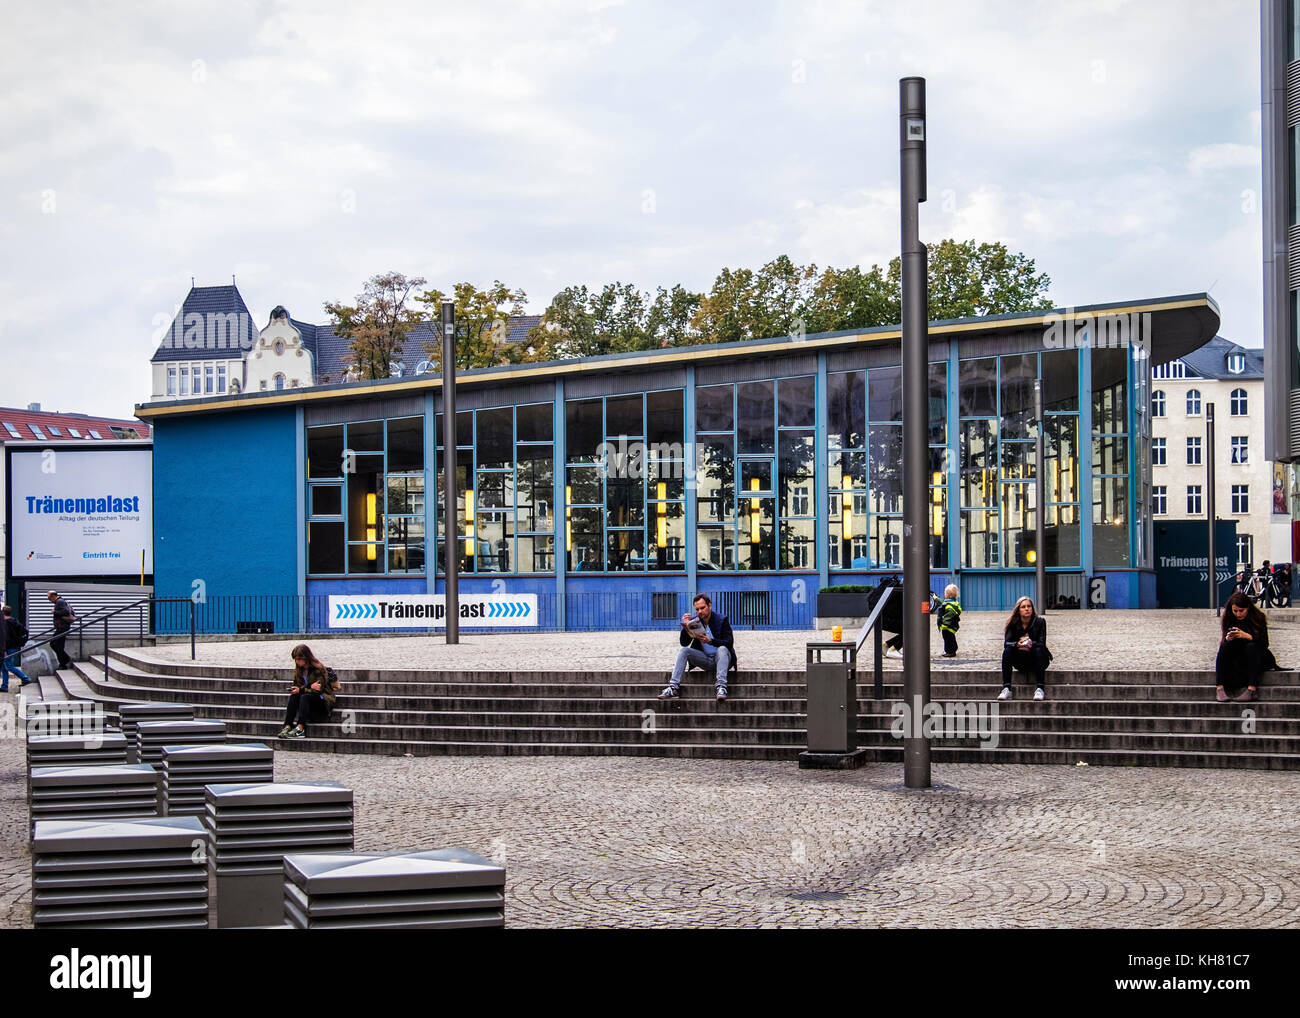 Berlin, Mitte. Tränenpalast,Palace of Tears.Exhibition and museum tells of border experiences of people living - Stock Image